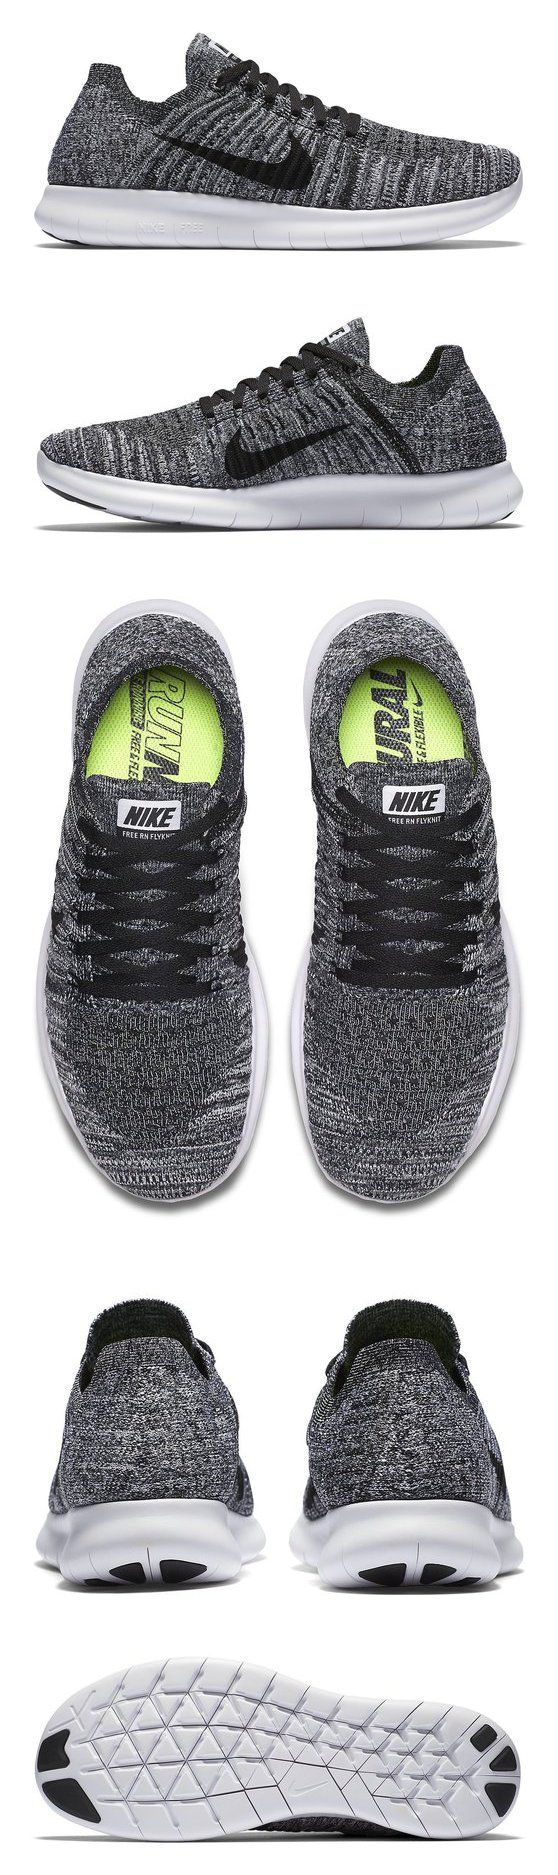 $130 - Nike Women\u0027s Free Rn Flyknit Running Shoe White/Black 9 B(M